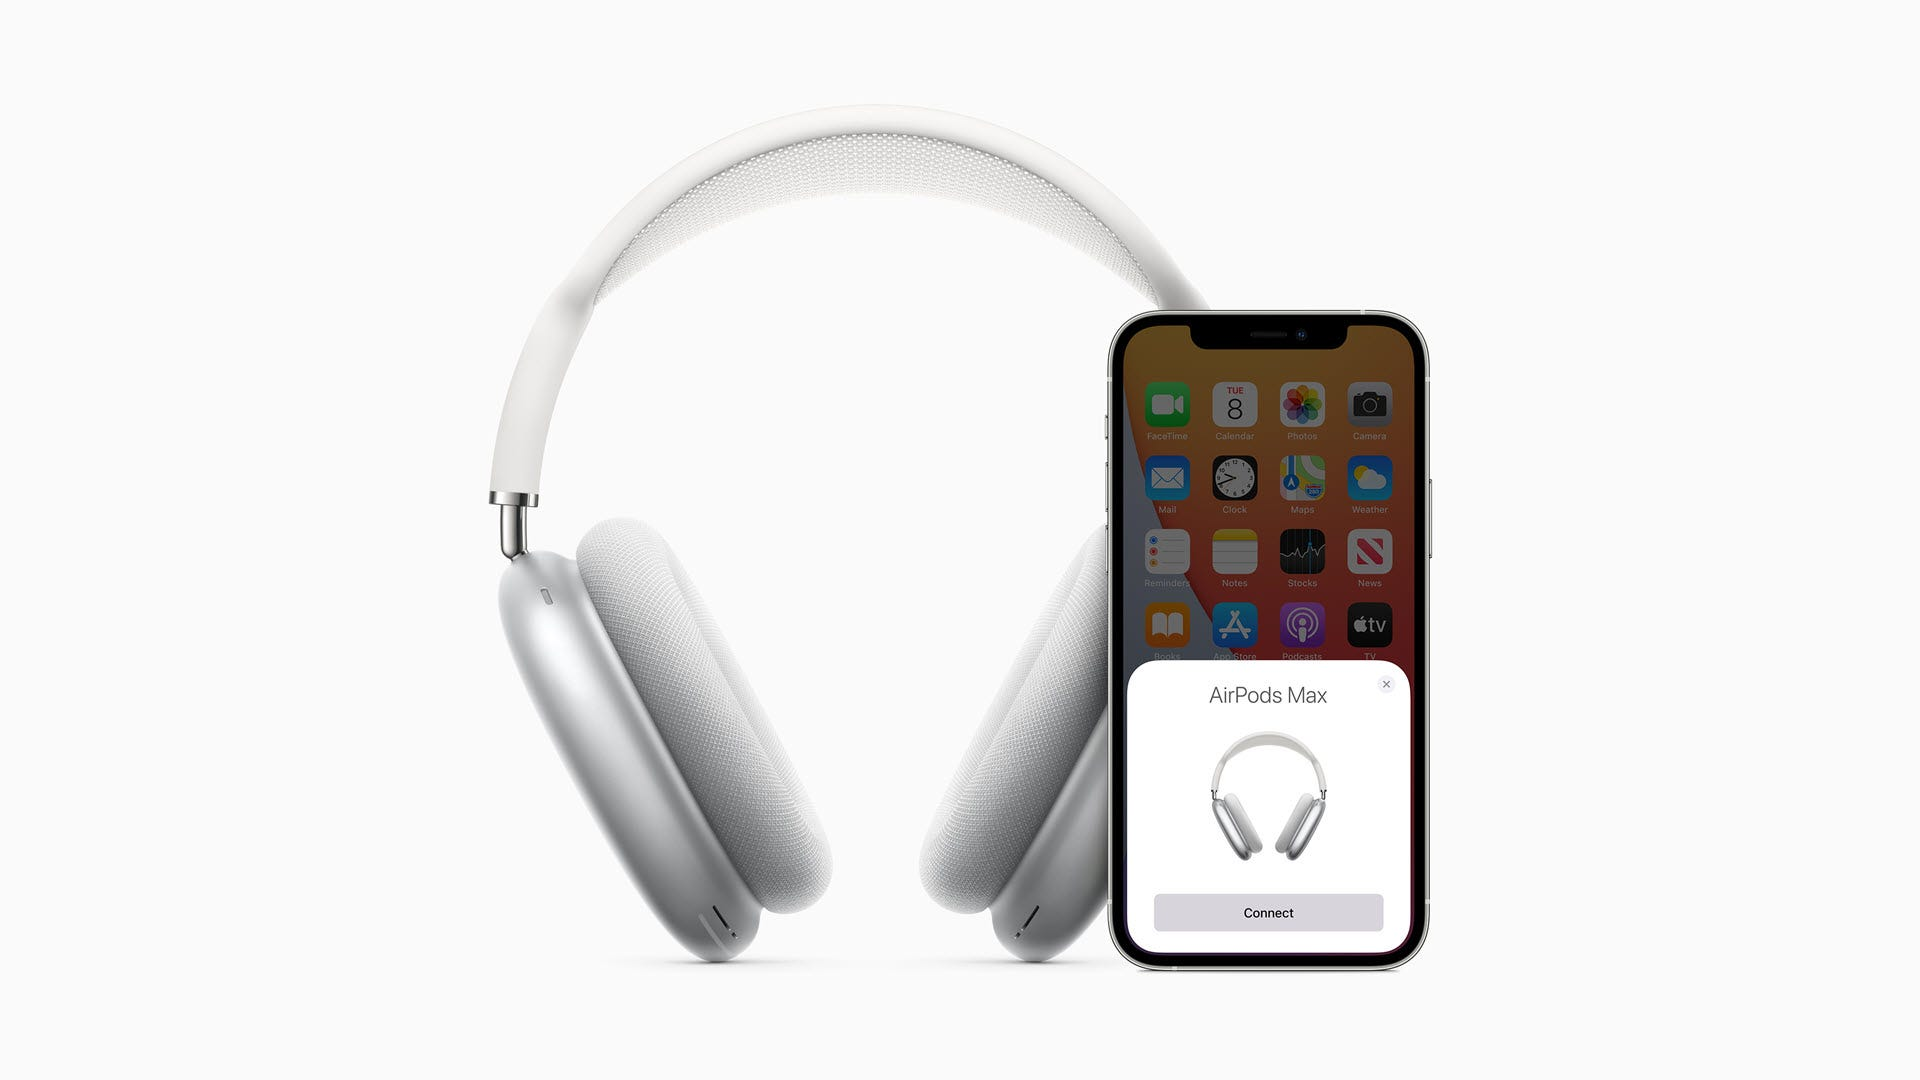 An AirPods Max headset next to an iPhone that is pairing with the headphones.